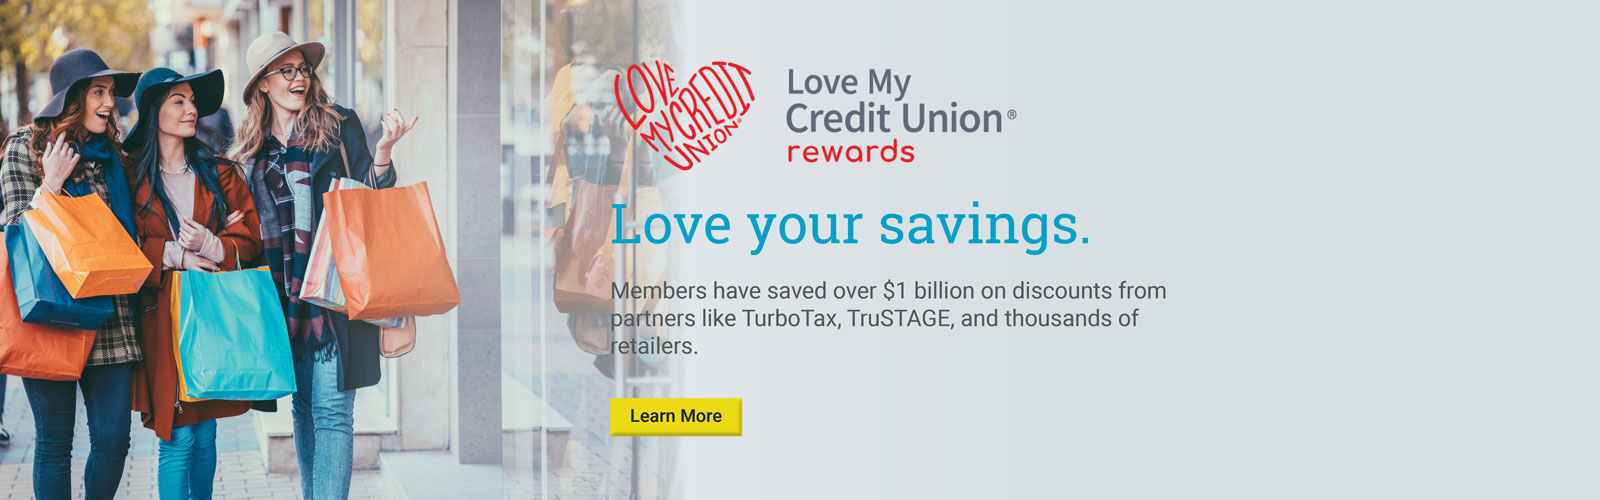 Love My Credit Union Banner. Love your savings. Members have saved over $1 billion on discounts from partners like Sprint, Turbo Tax, ADT, TruSTAGE, and thousands of retailers. Start saving today.